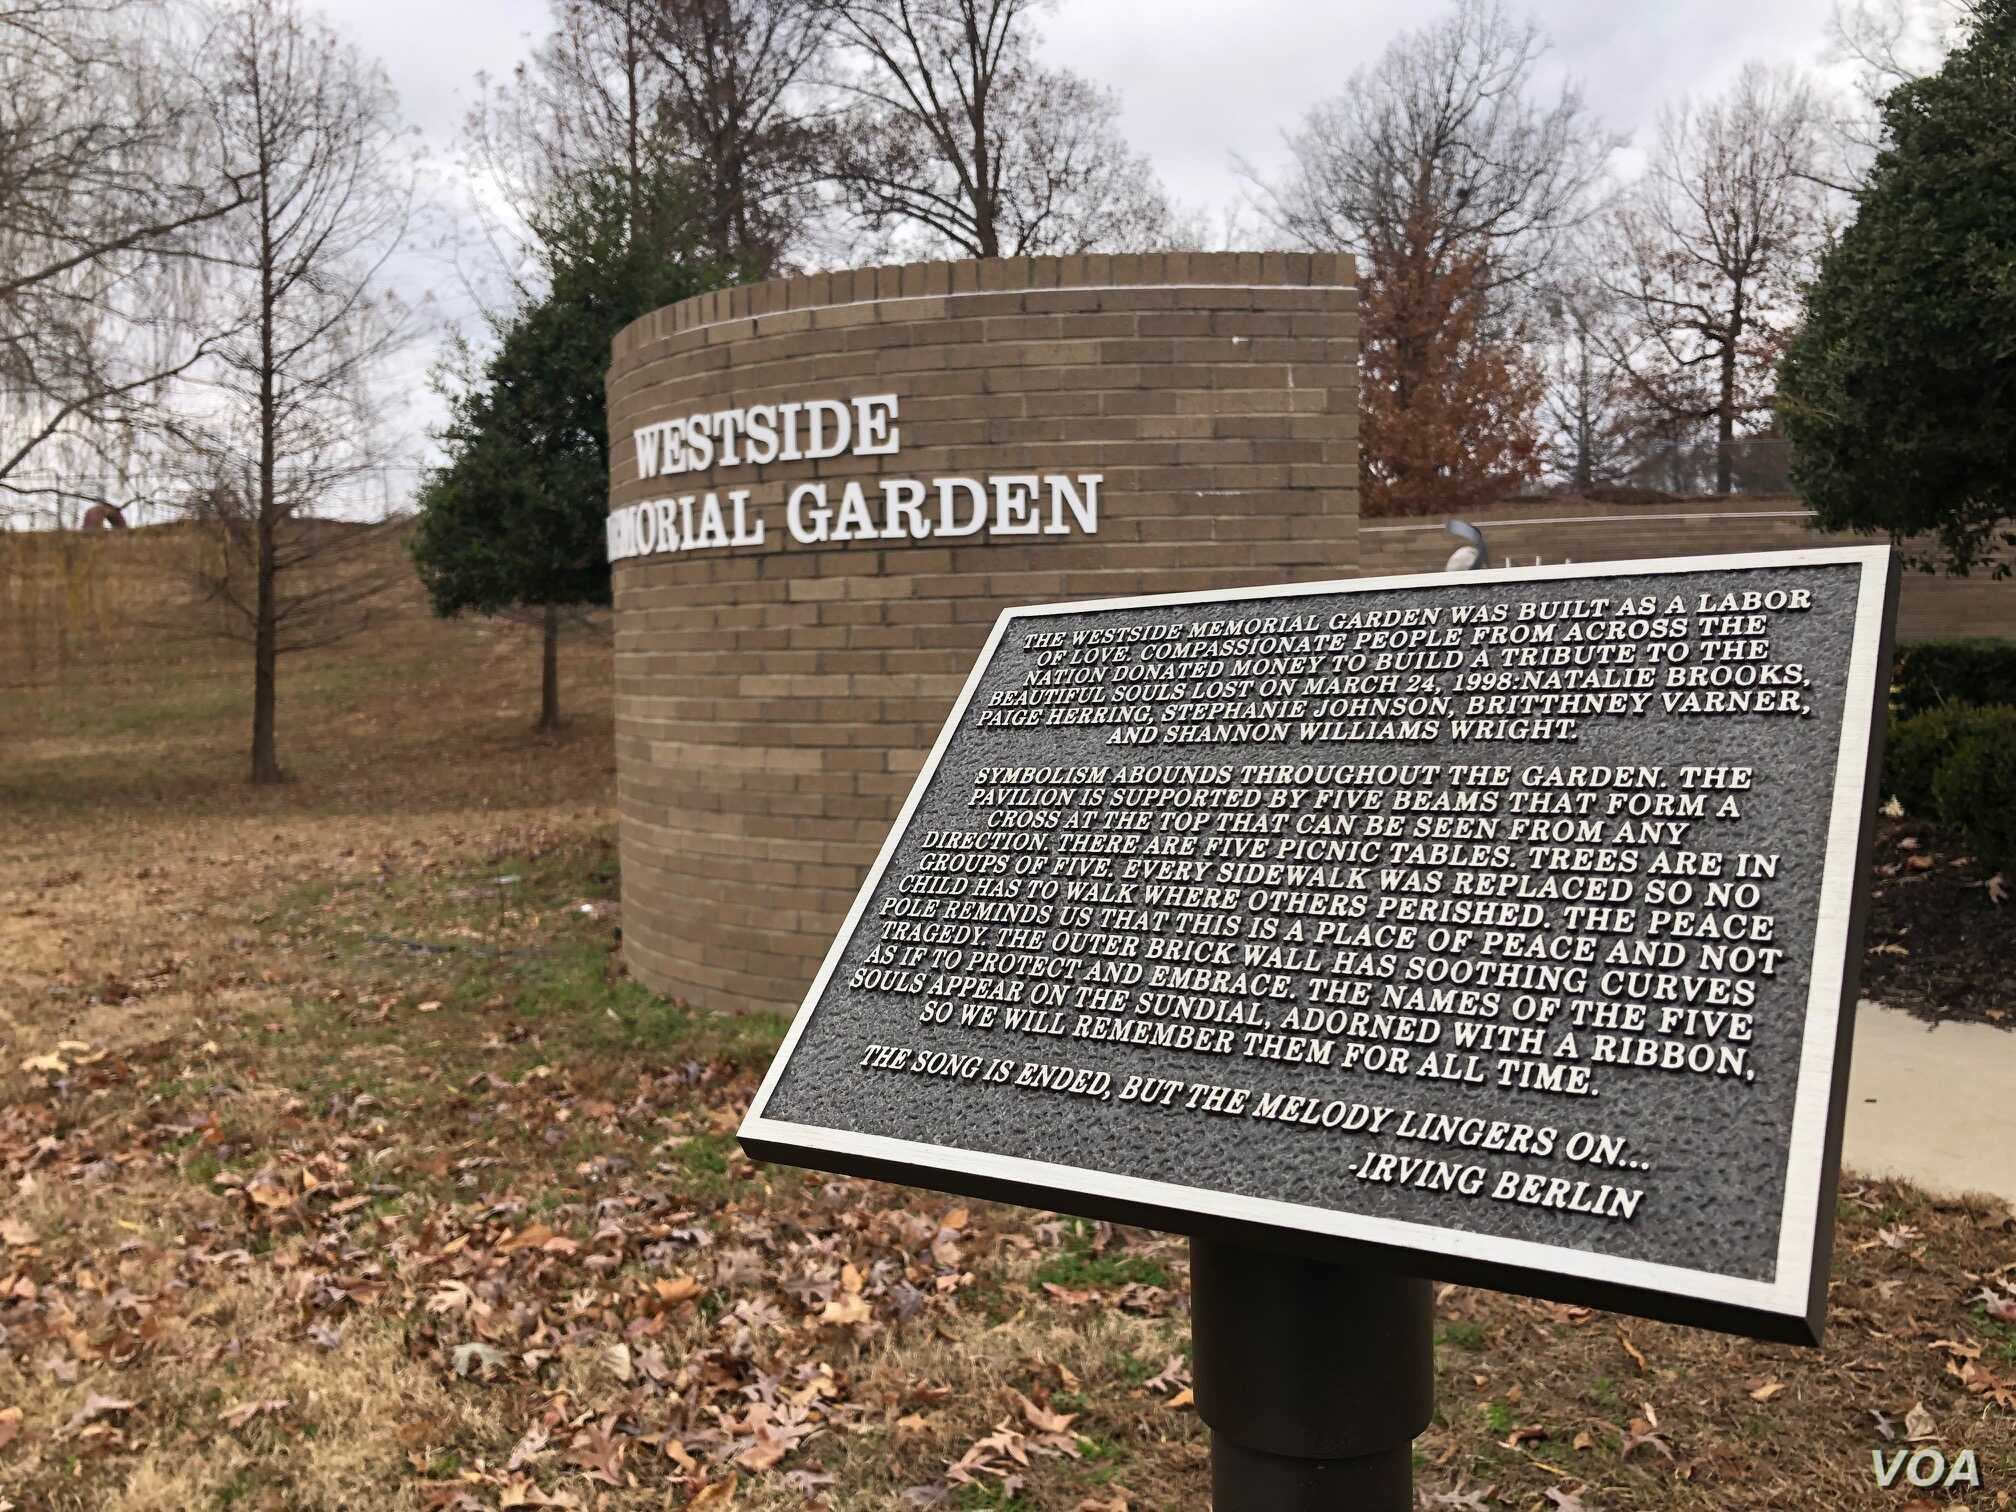 The legacy of the 1998 school shooting in Jonesboro, in northeast Arkansas, has contributed to stricter security. Photo taken Dec. 4, 2018 (T.Krug/VOA News)